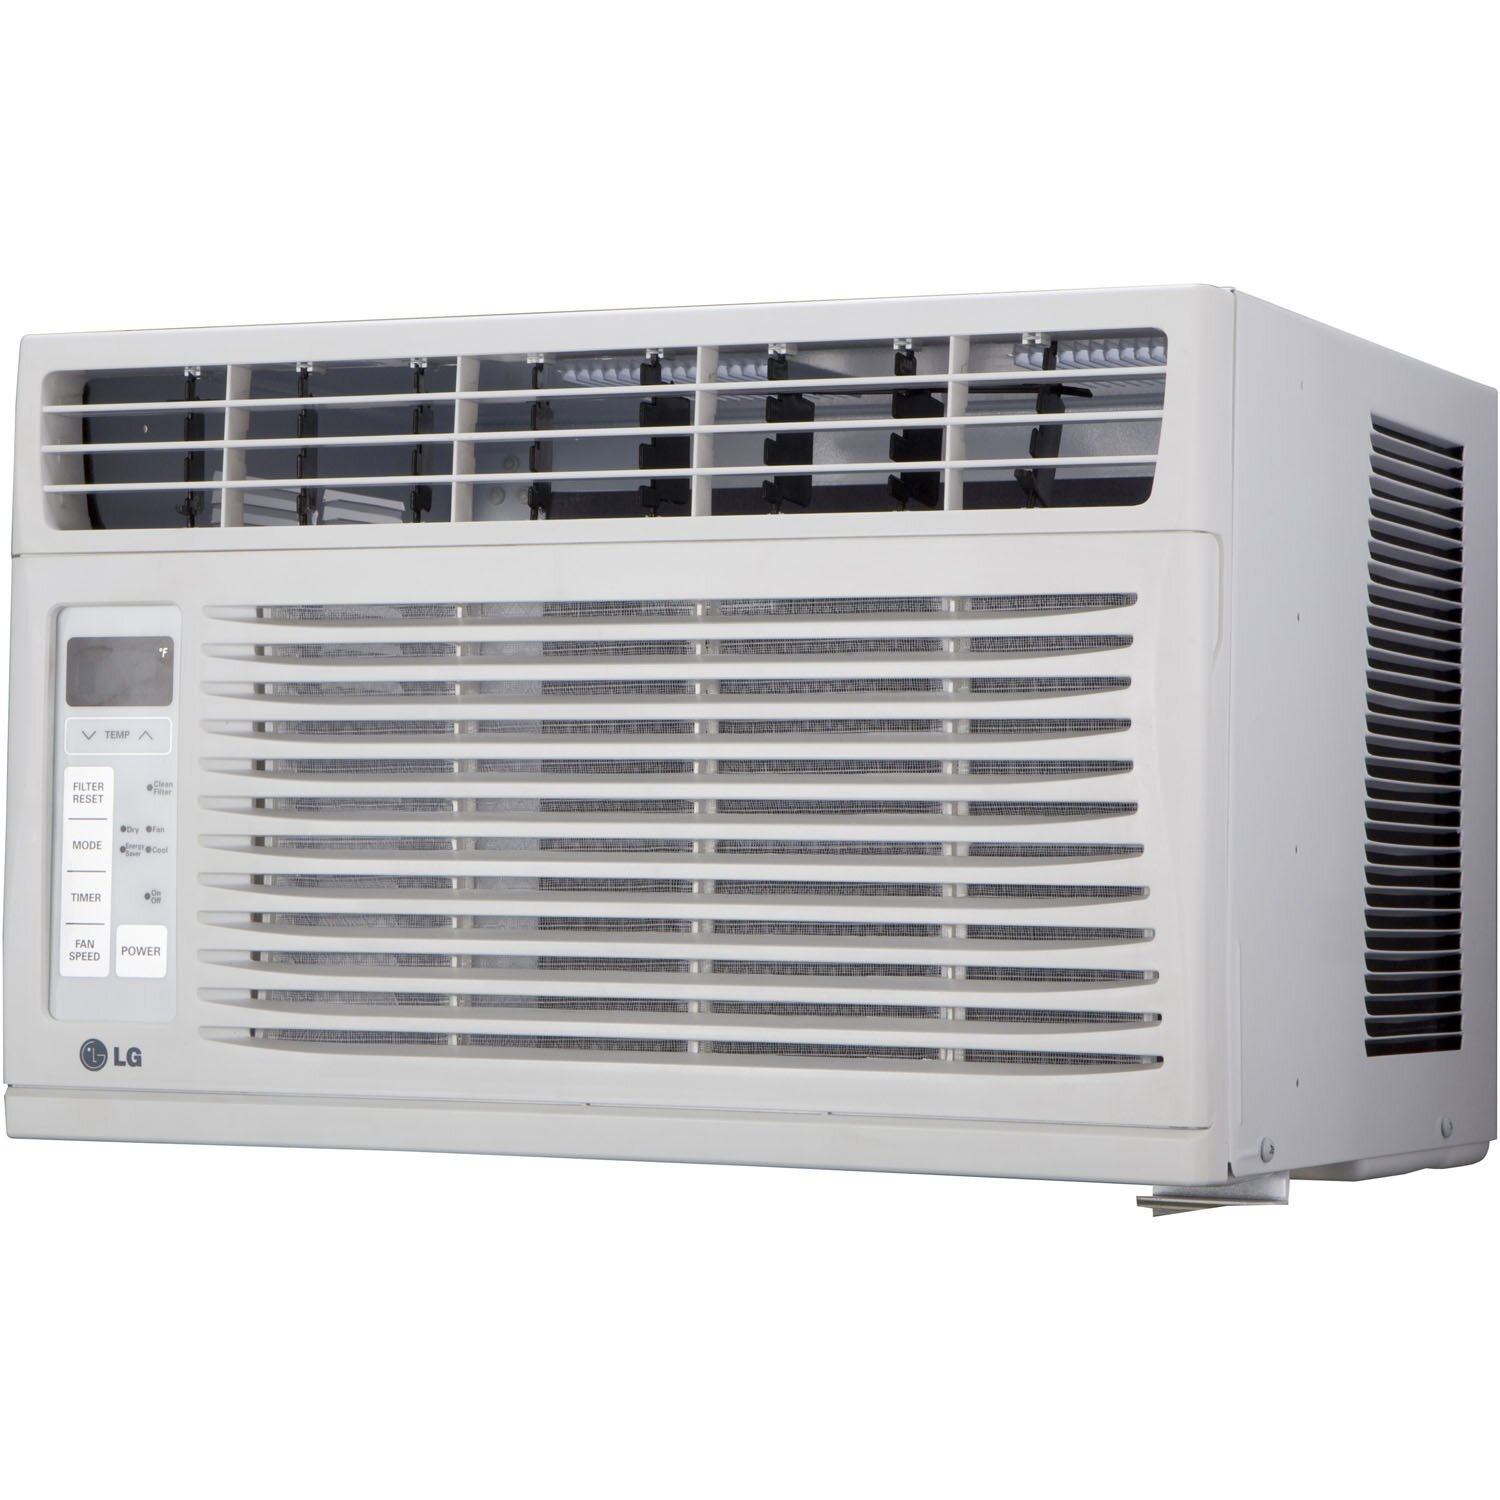 LG 6000 BTU Window Air Conditioner with Remote & Reviews Wayfair #54575F